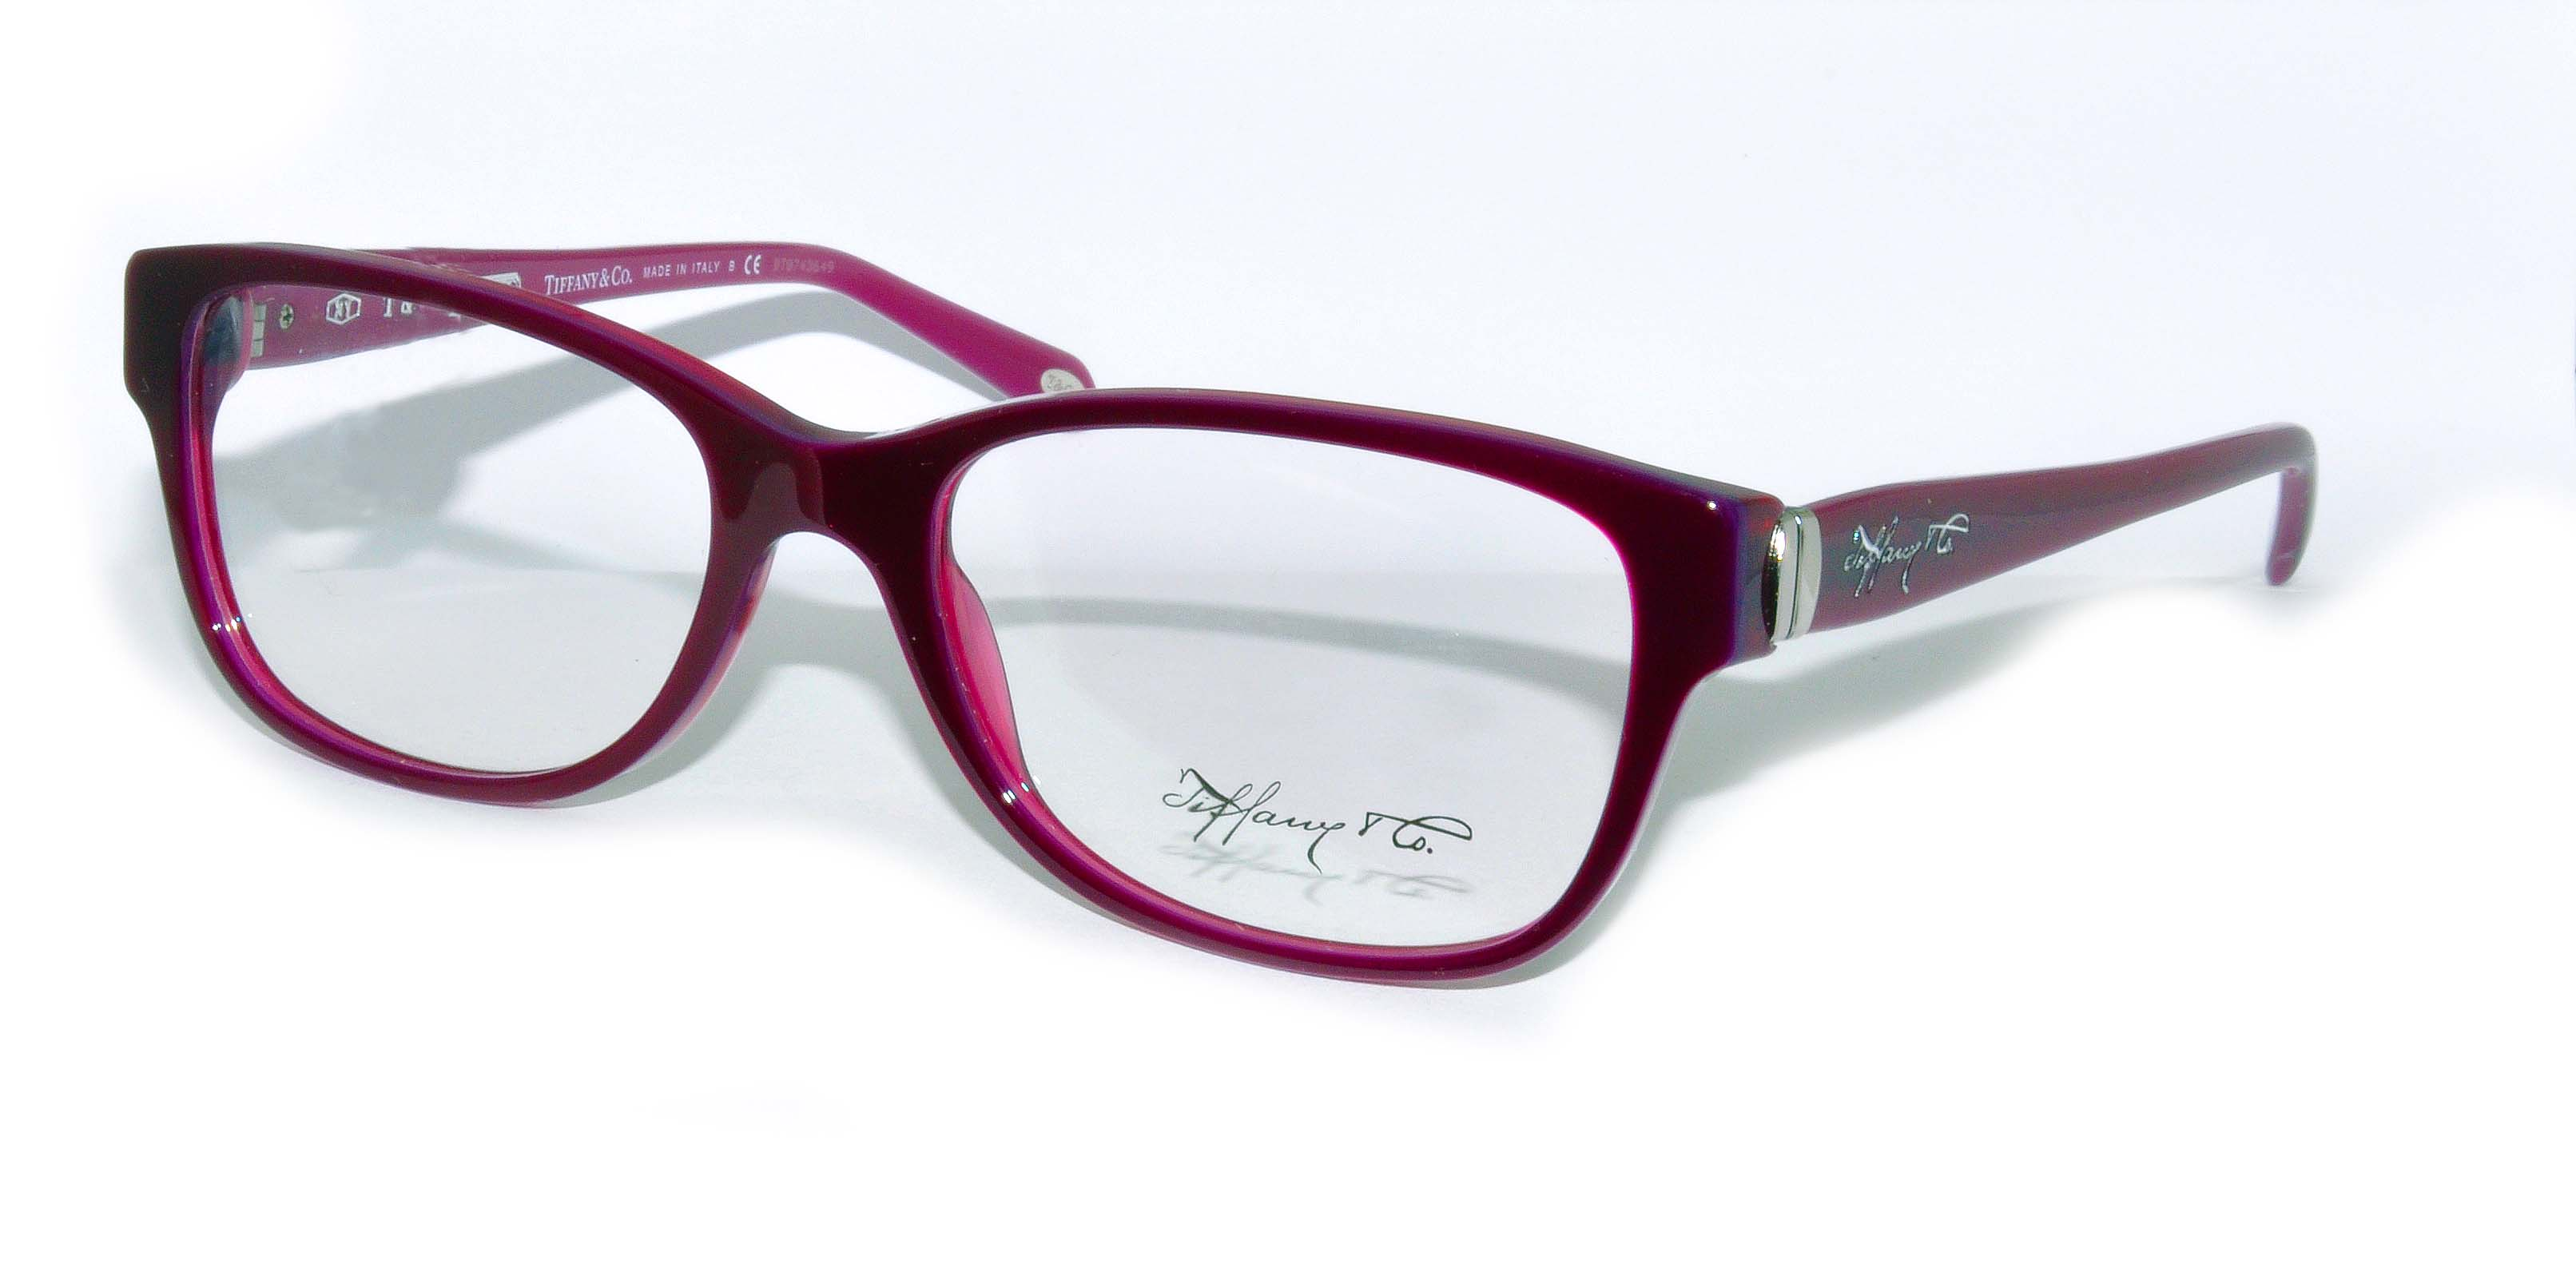 Tiffany Designer Eyeglass Frames : Tiffany glasses - Tiffany TF 2084 8163 designer eyewear